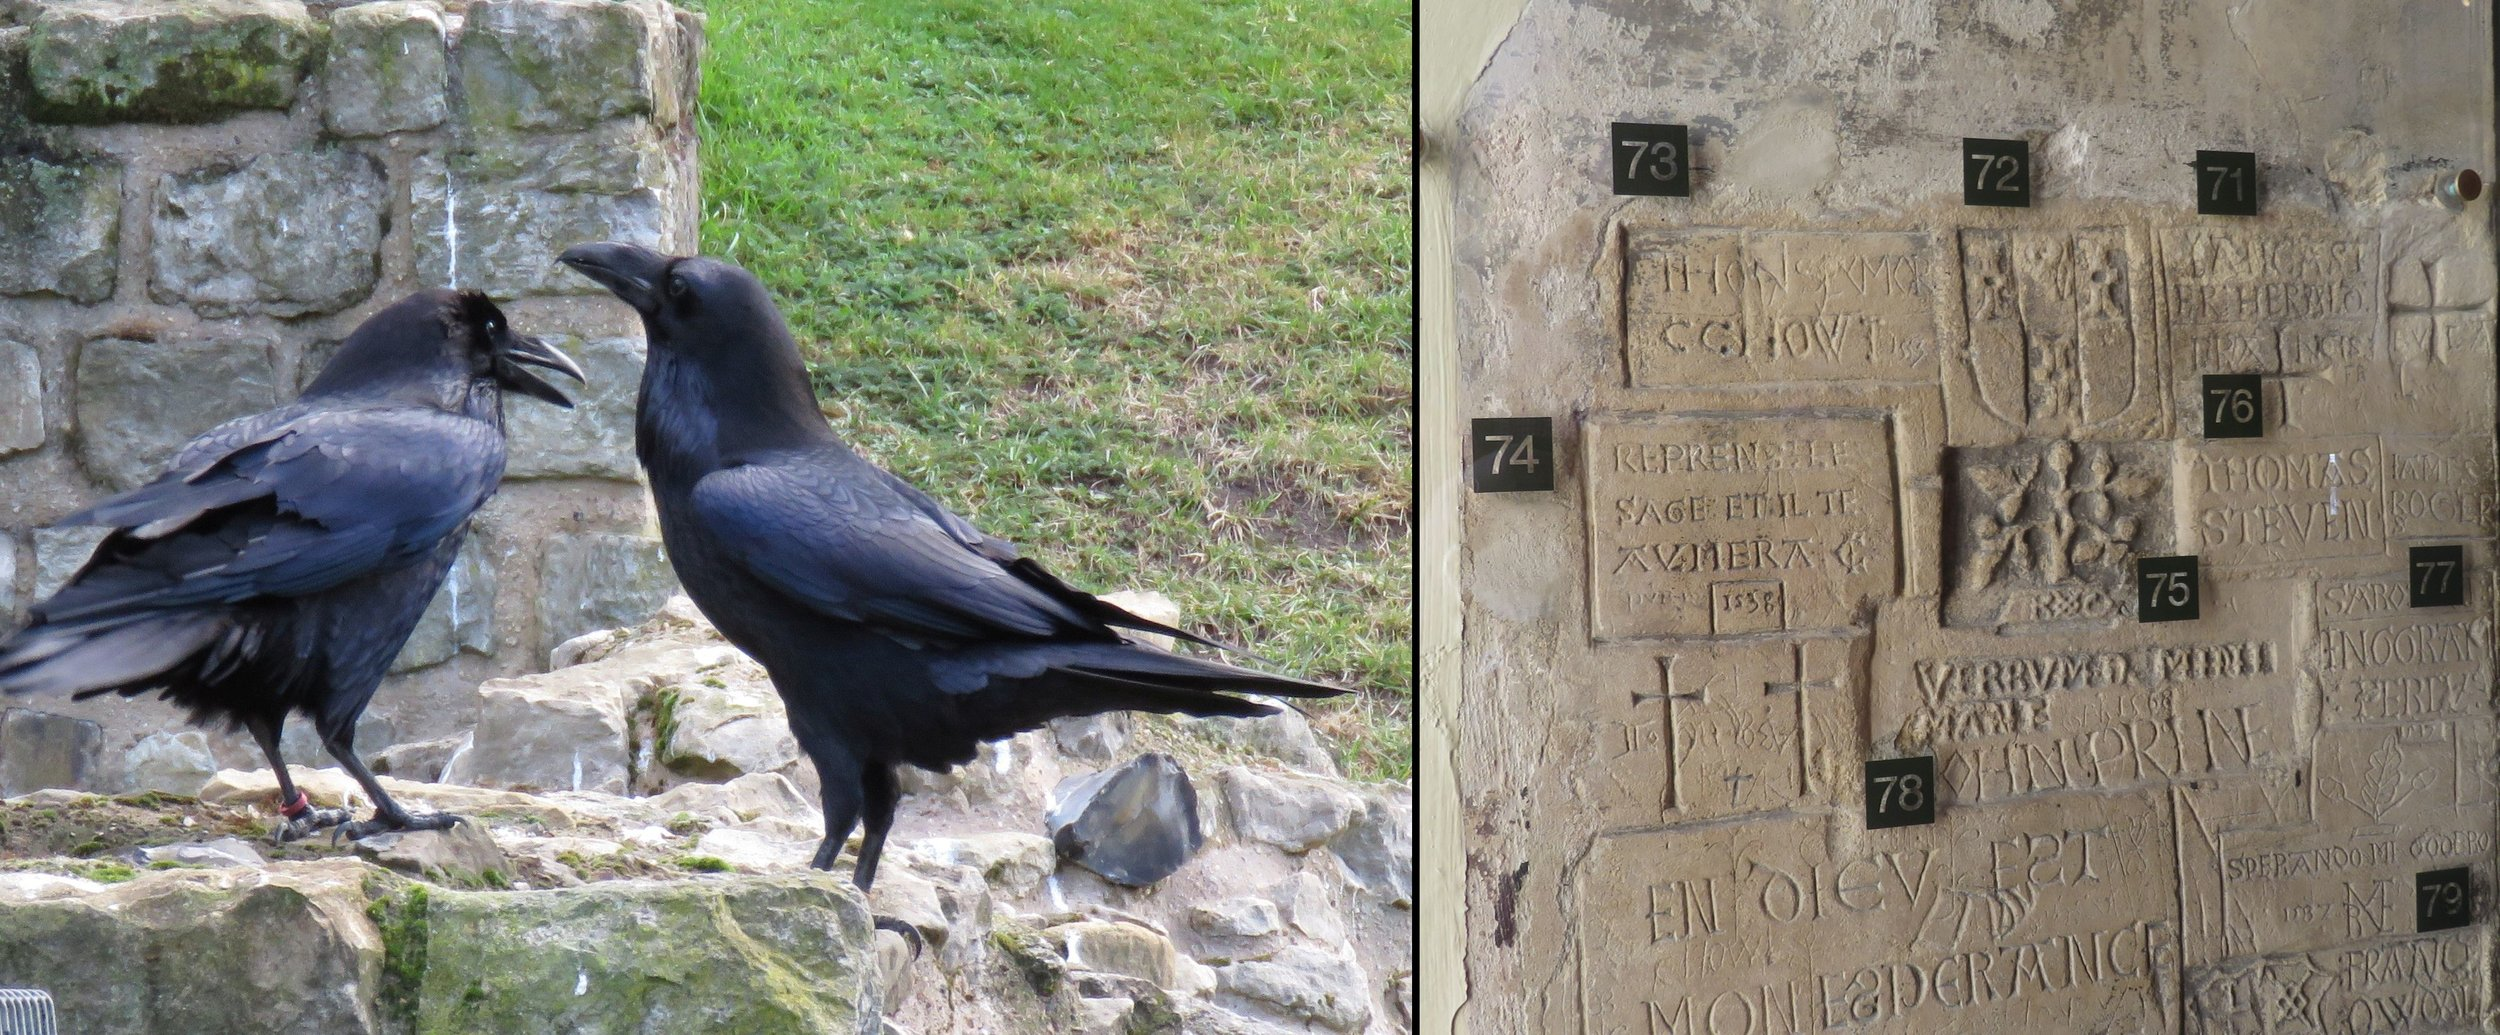 Ravens abound at the Tower; graffiti in the Bloody Tower.